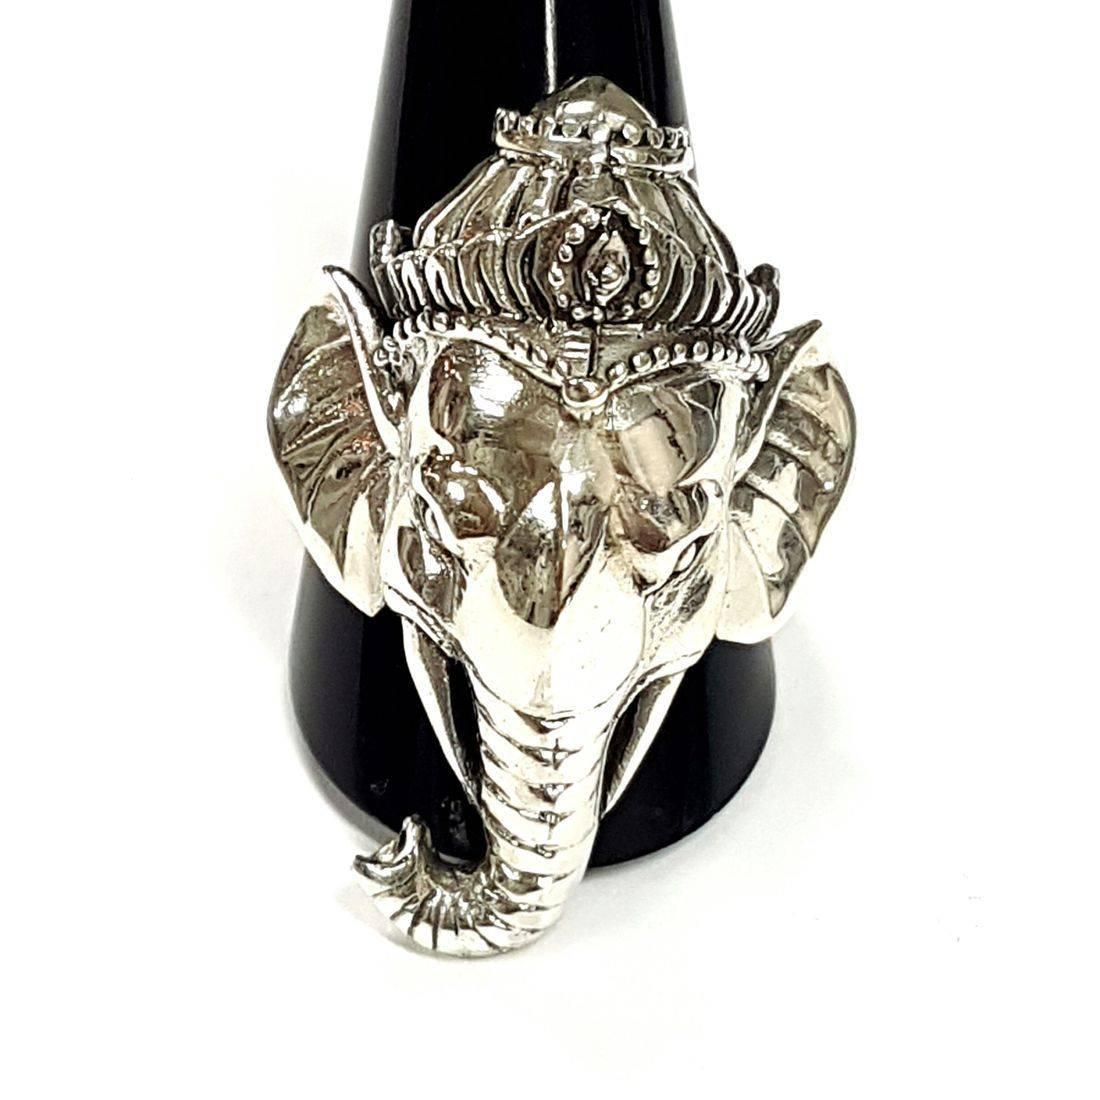 Decorative Elephant Ring  available at Kazbah online and our Leicester City Centre shop